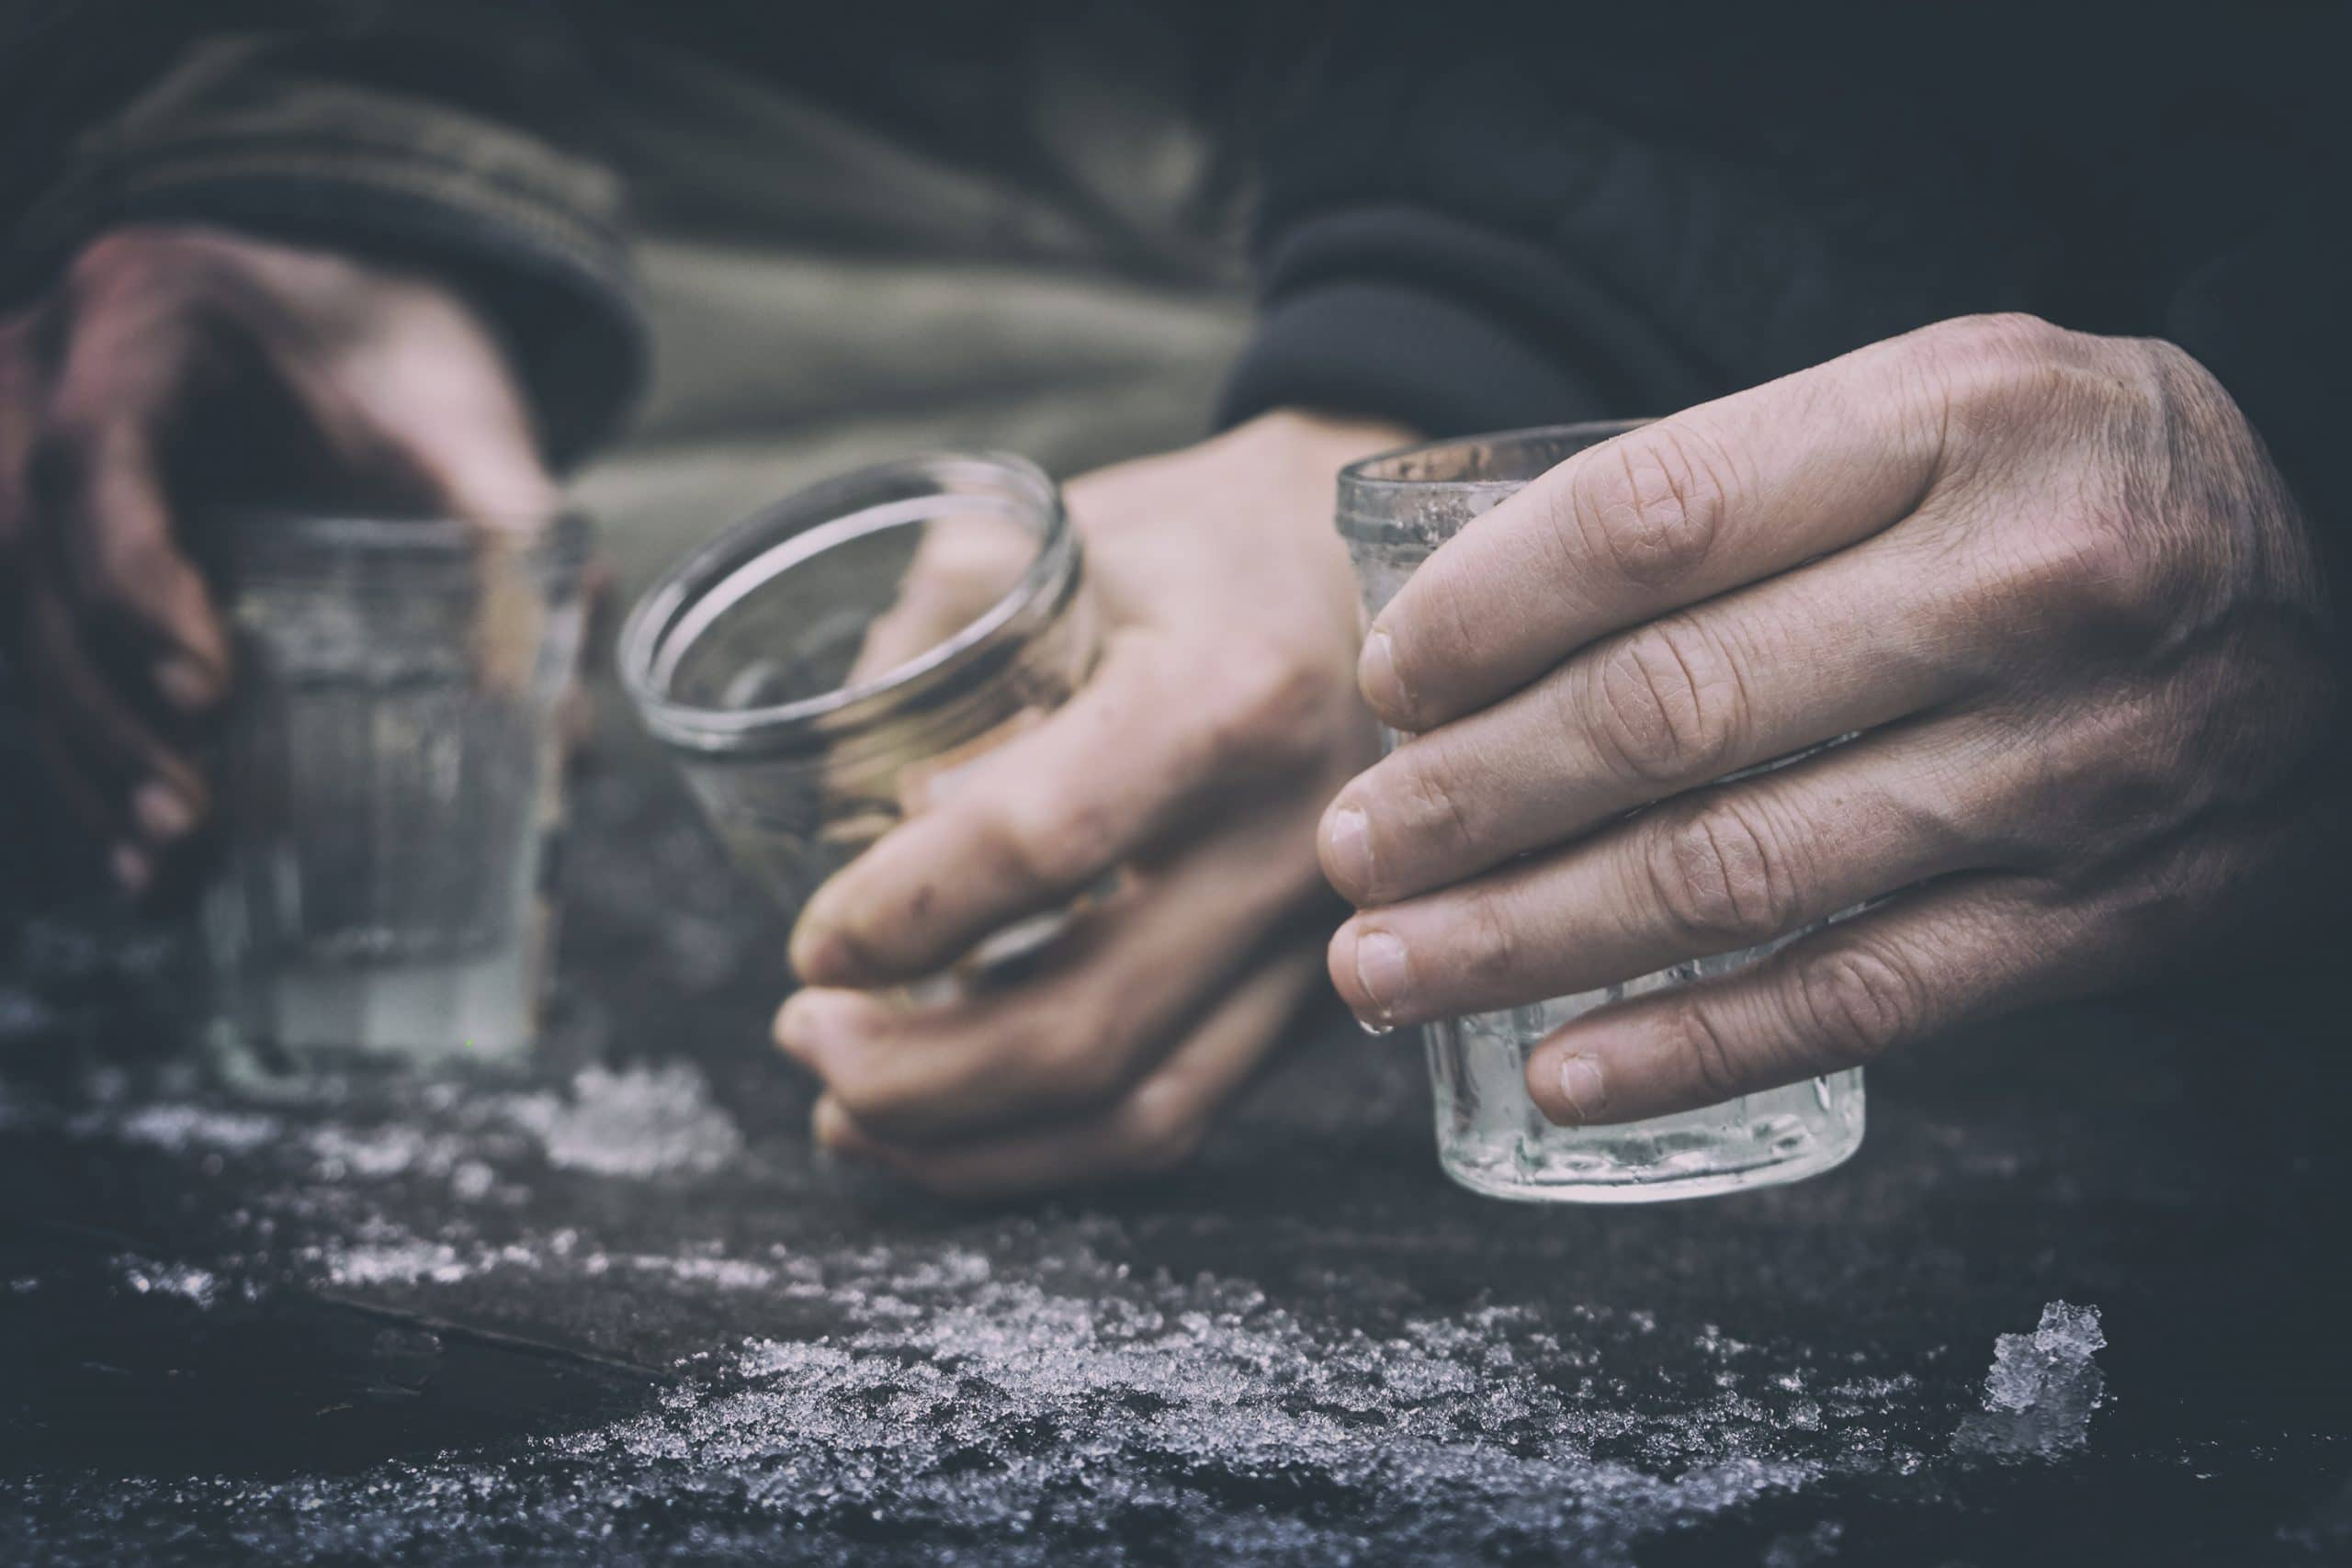 Thumnail photo of Alcohol Consumption in Russia Has Declined by 43% Since 2003